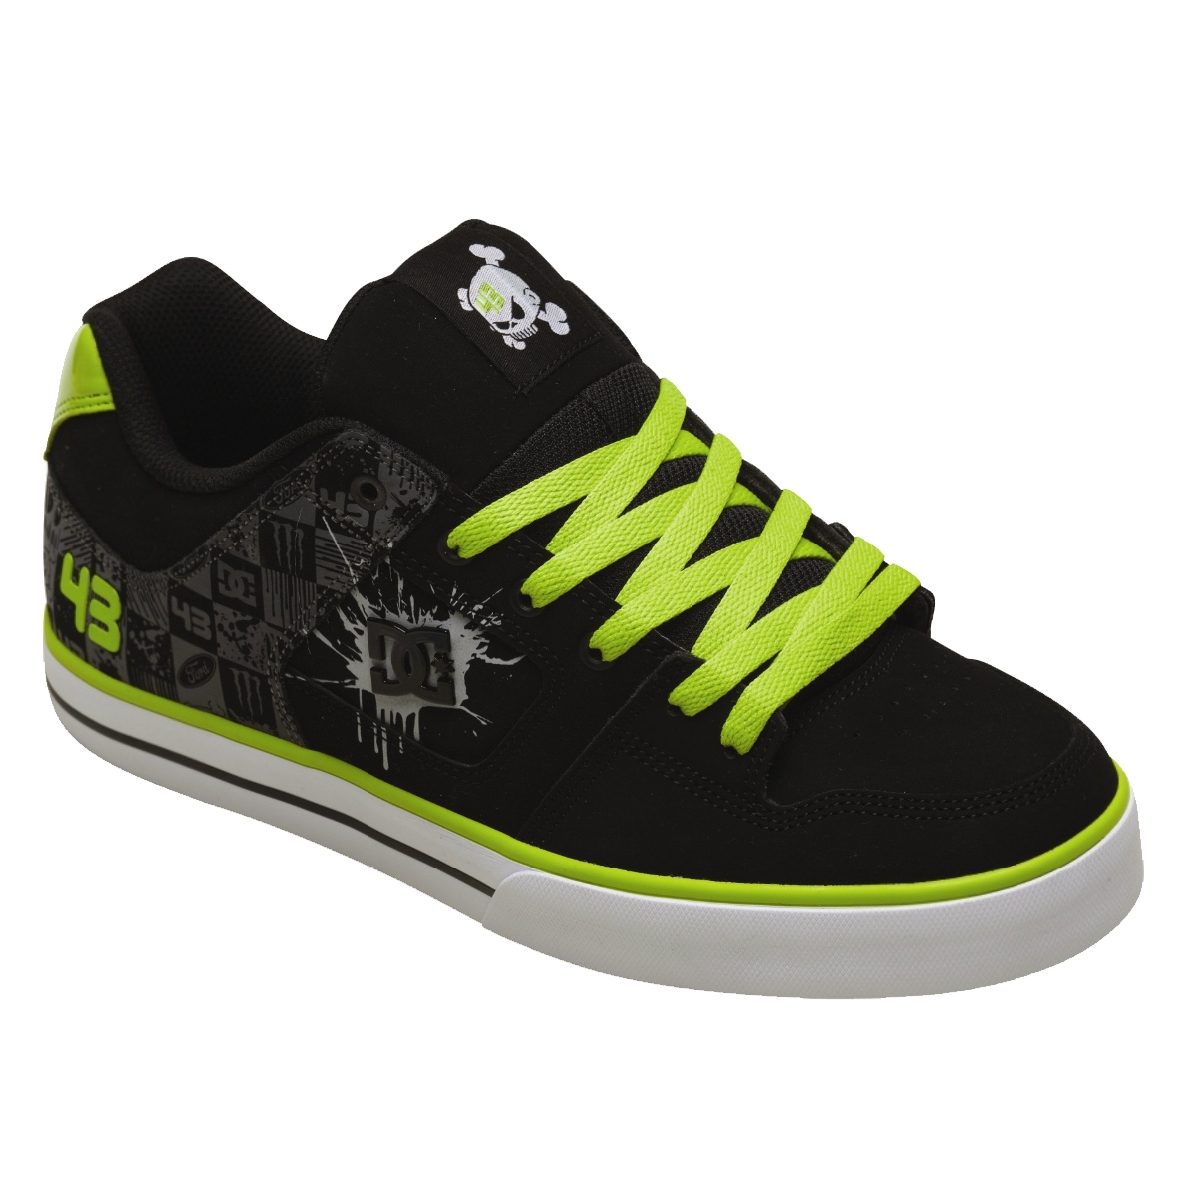 ken block dc shoes 28 images dc shoes ken block spartan high wc black battleship soft dc. Black Bedroom Furniture Sets. Home Design Ideas